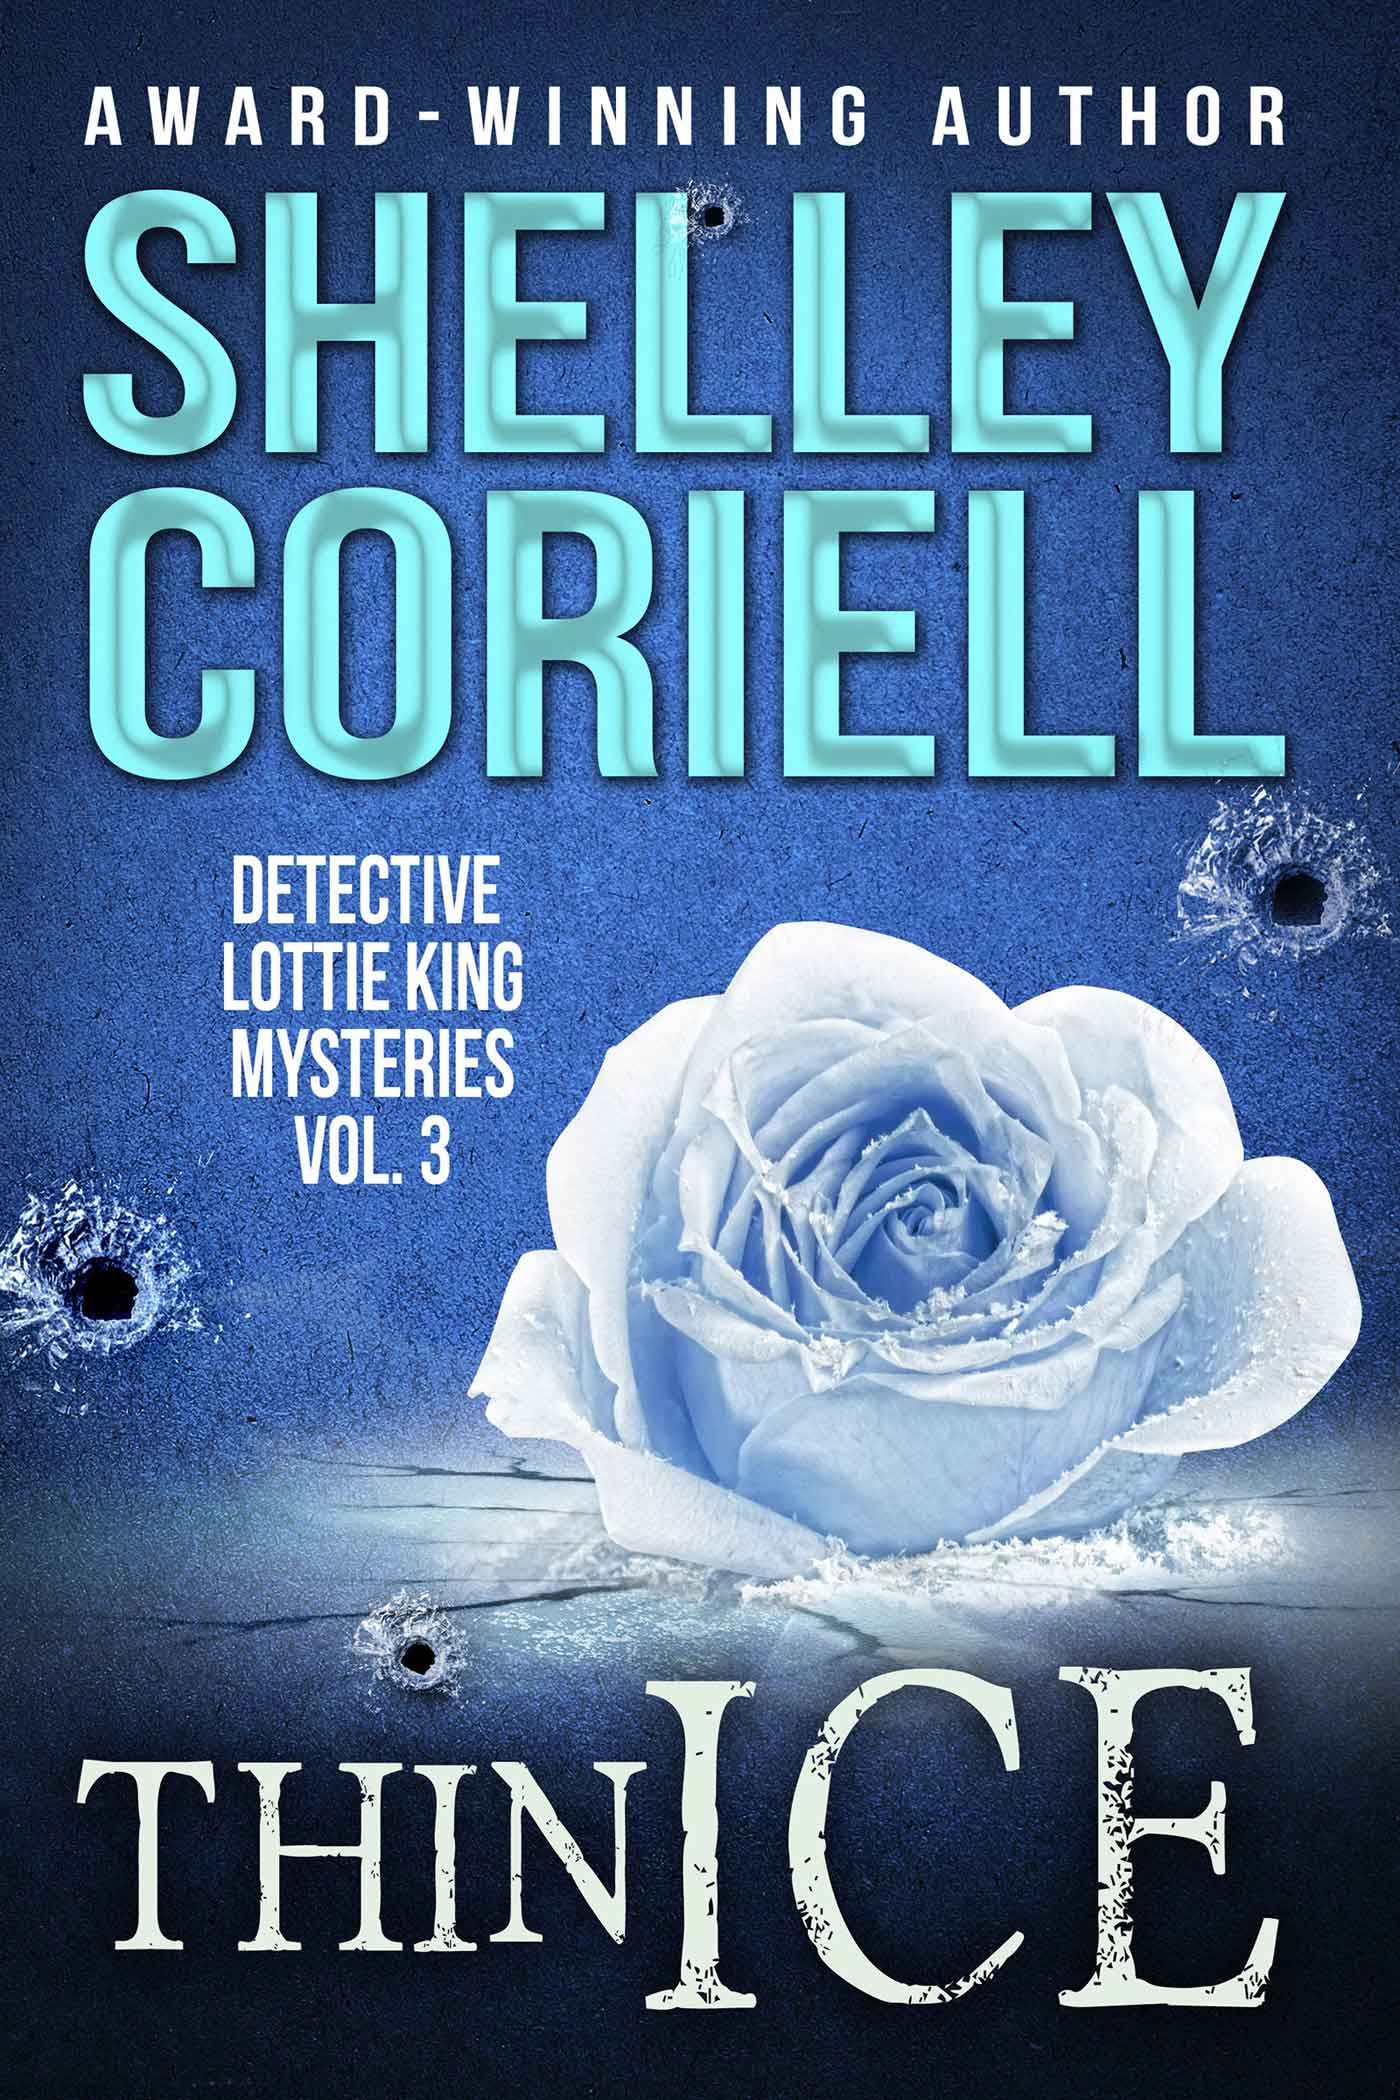 Thin Ice (Detective Lottie King Mysteries, Vol. 3) a mystery anthology by Shelley Coriell, published by Winter Pear Press